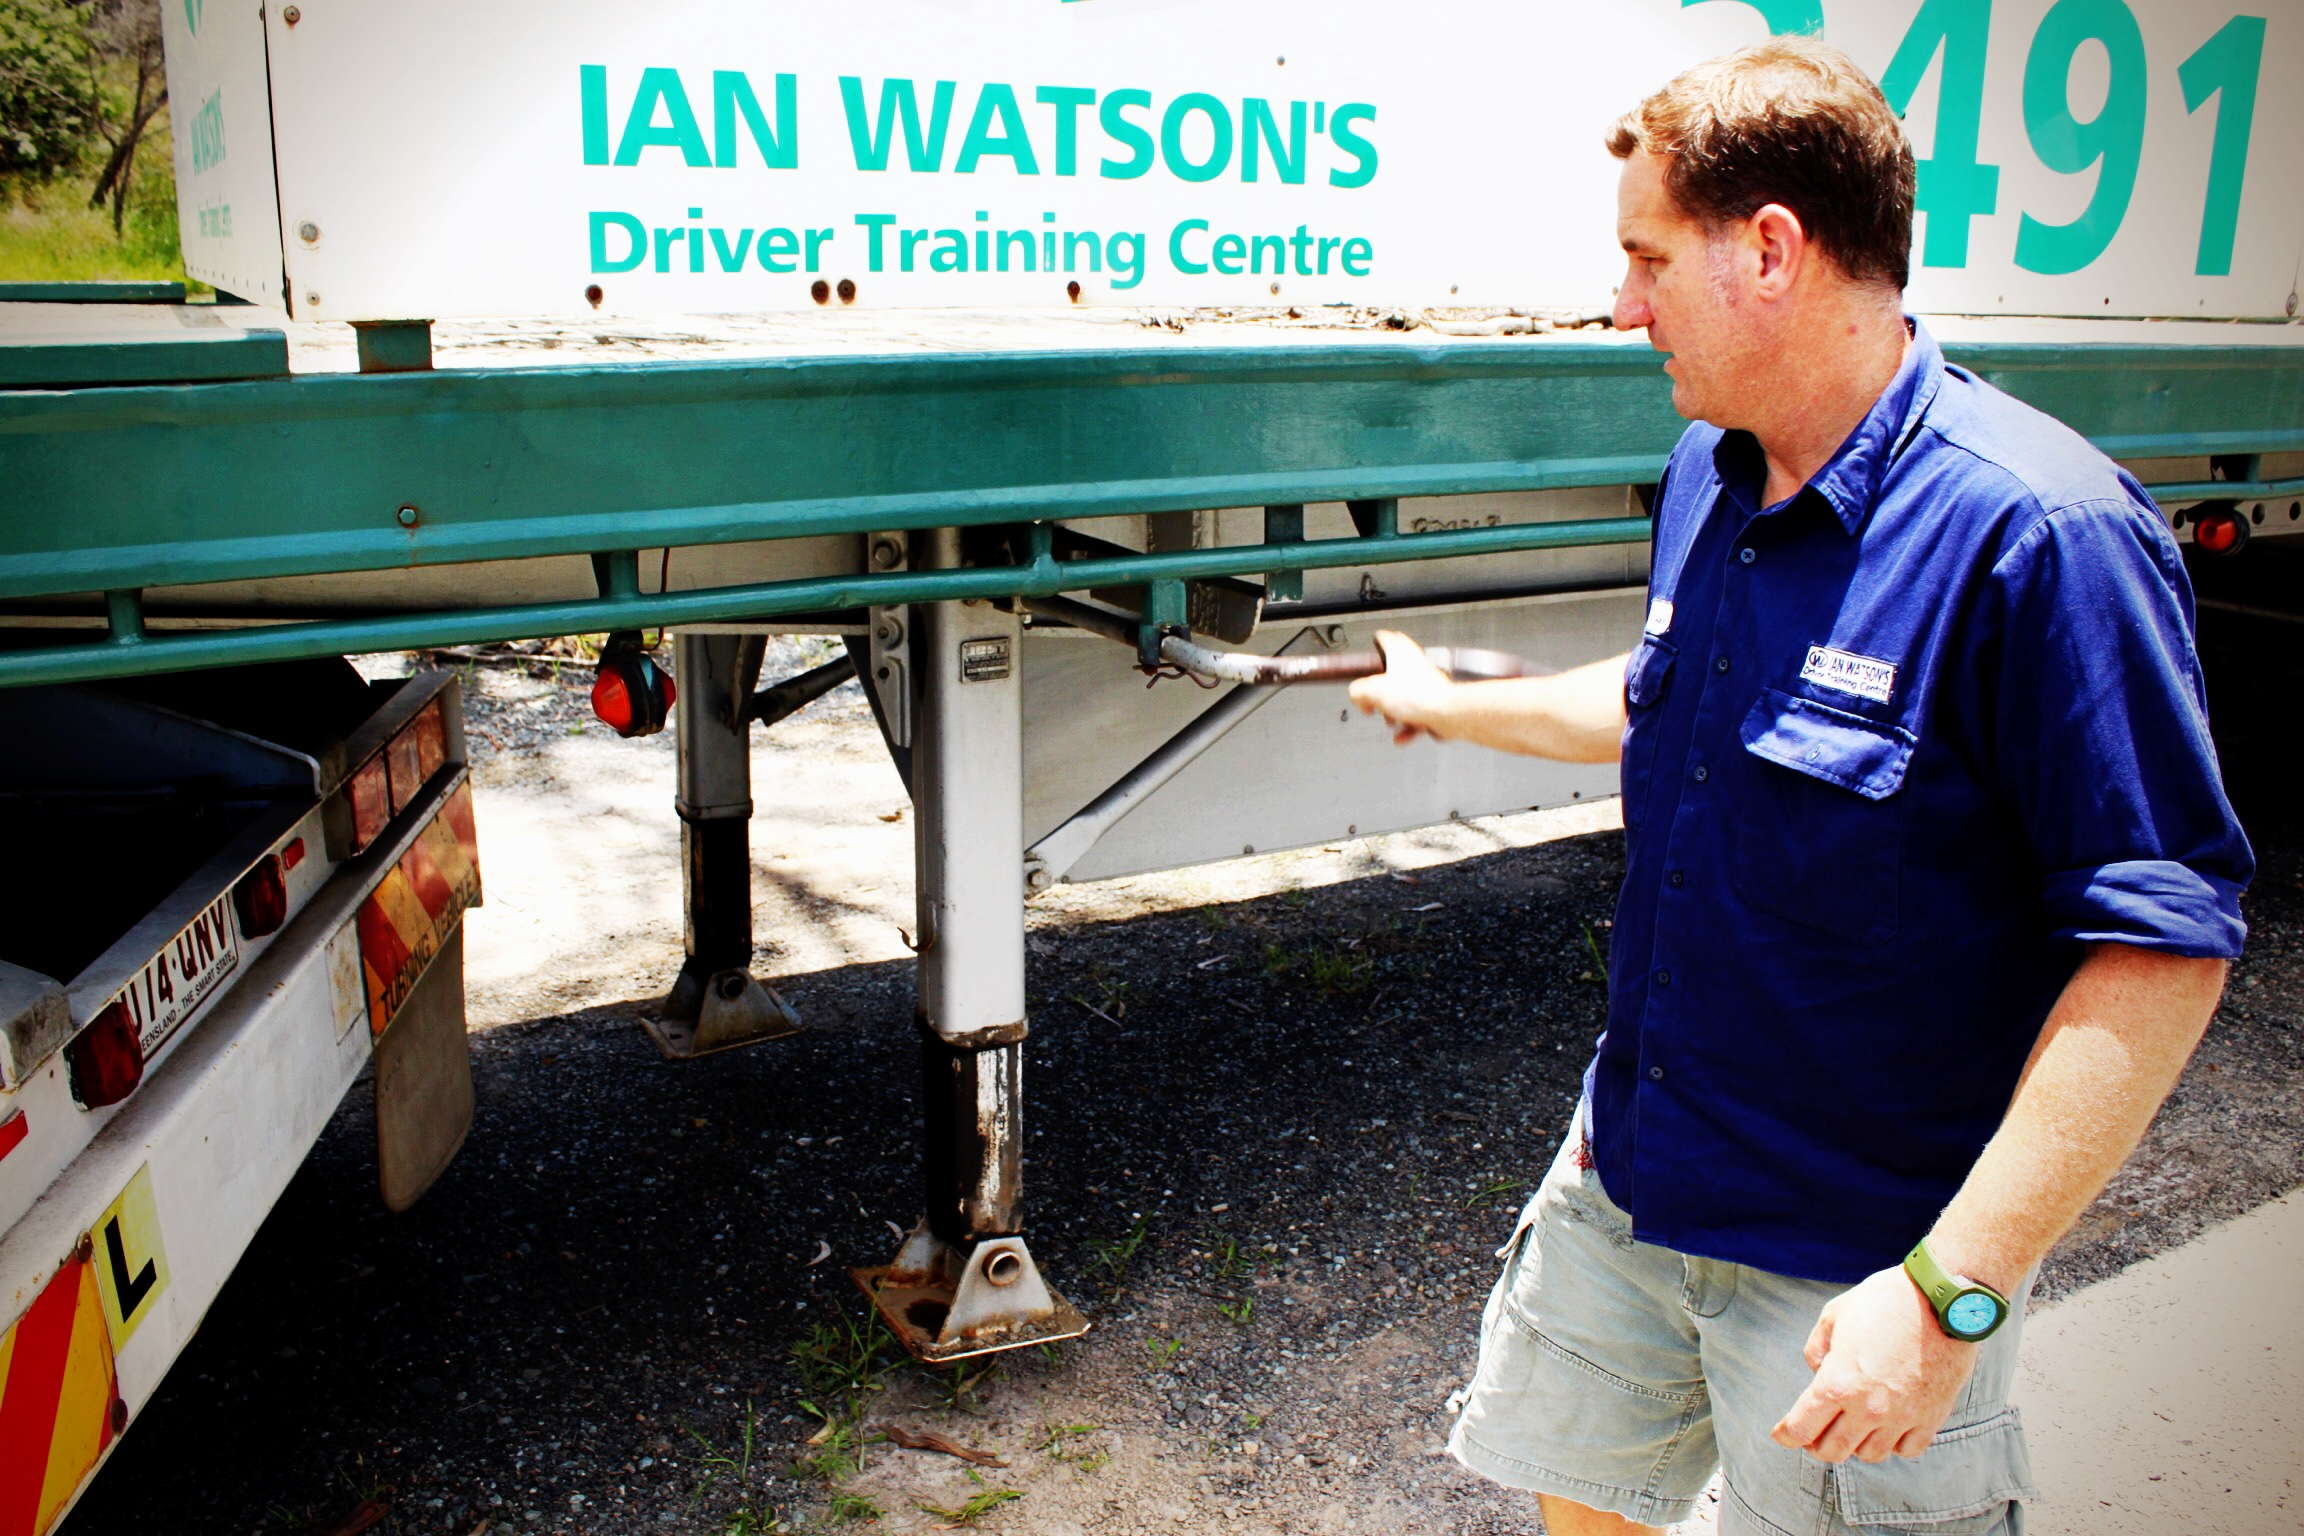 Get your HC licence quickly at IAN WATSON'S